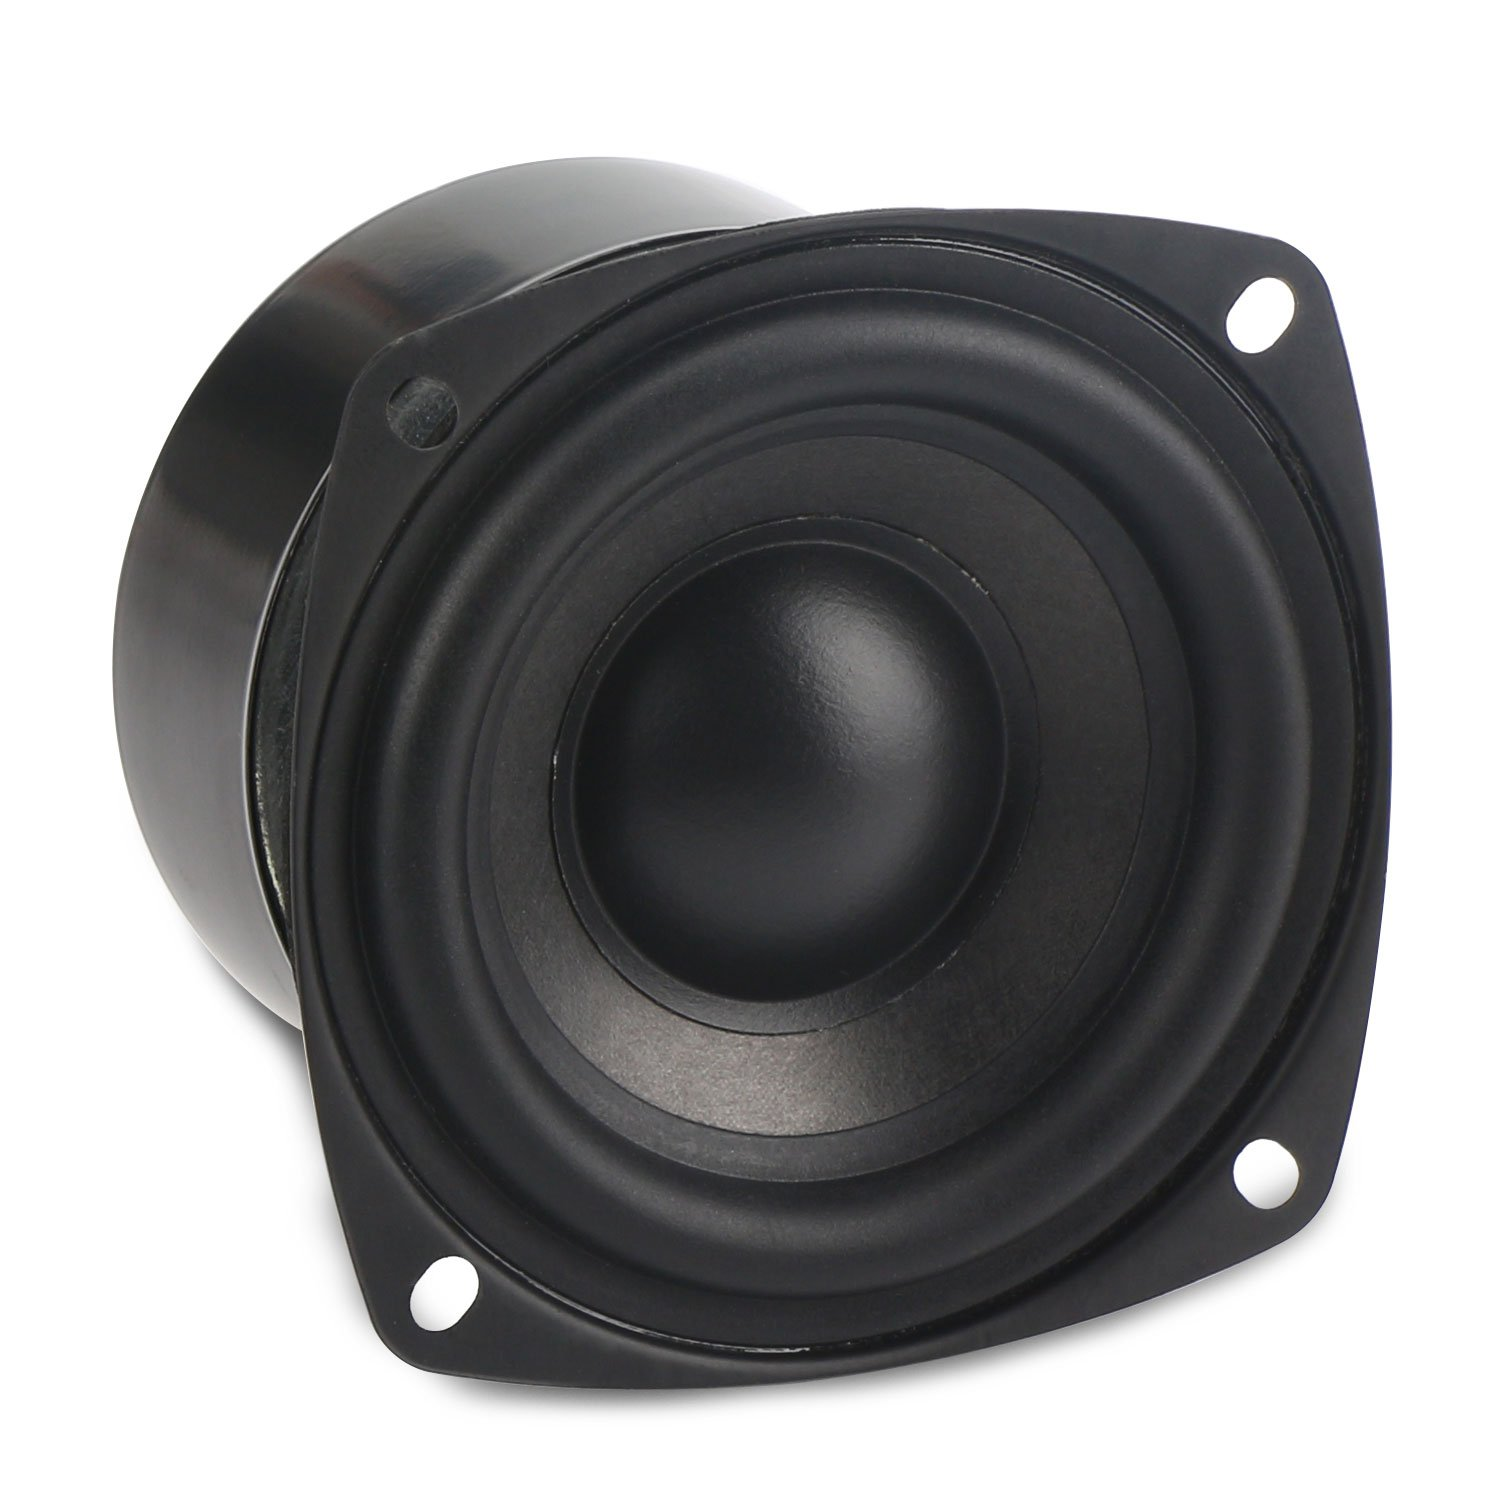 DROK 25W 3 Inch Square Shape 8 Ohm Woofer Speaker Stereo Loudspeaker Computer Compact Speakers, DIY Home Car Audio HiFi Speakers Bass 90Hz-5KHz